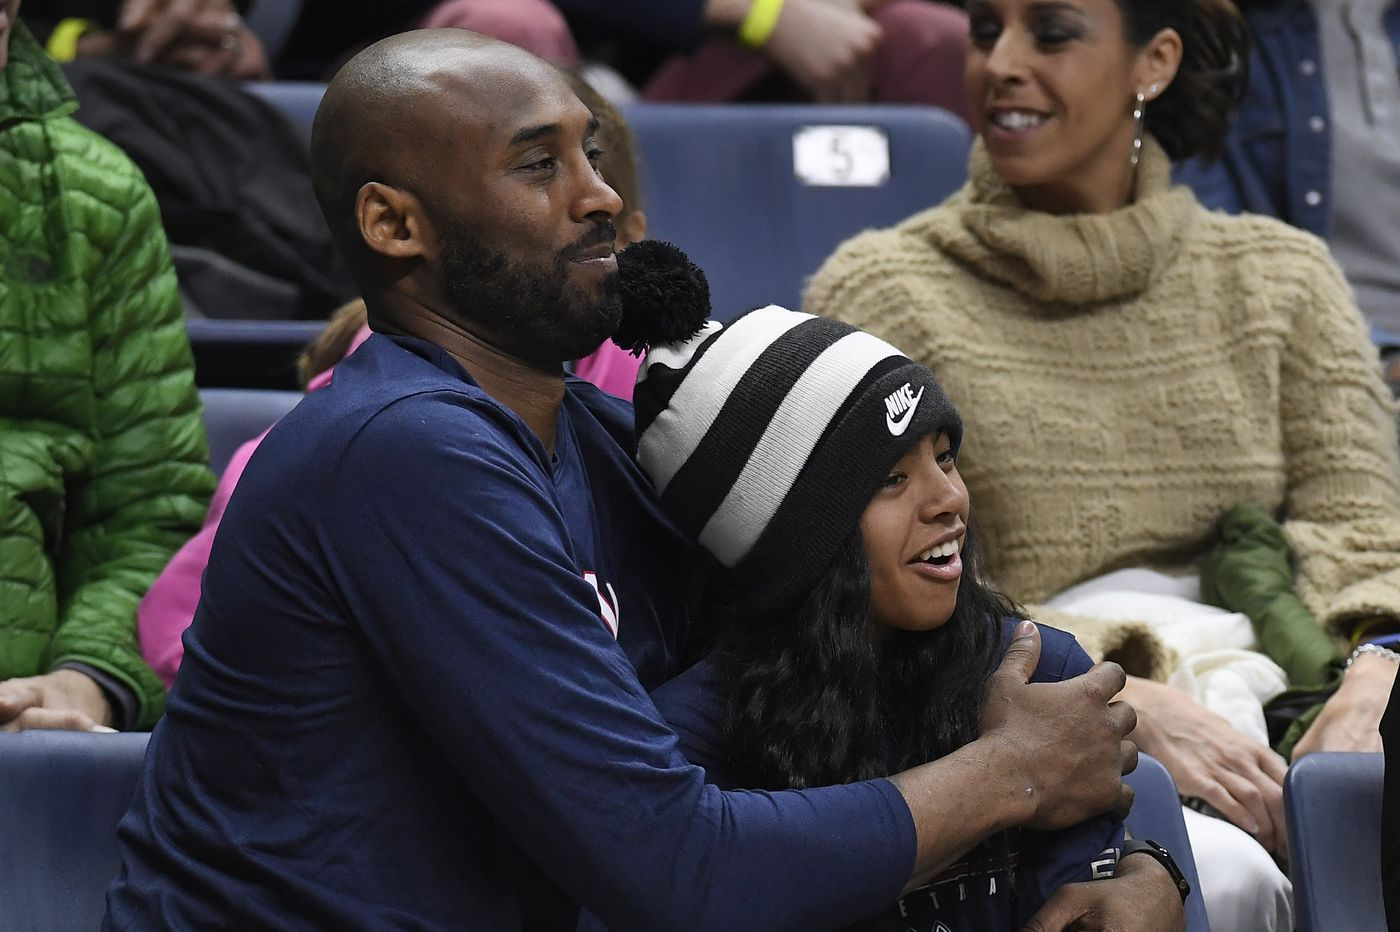 Kobe Bryant, daughter Gianna quietly buried in a private family service